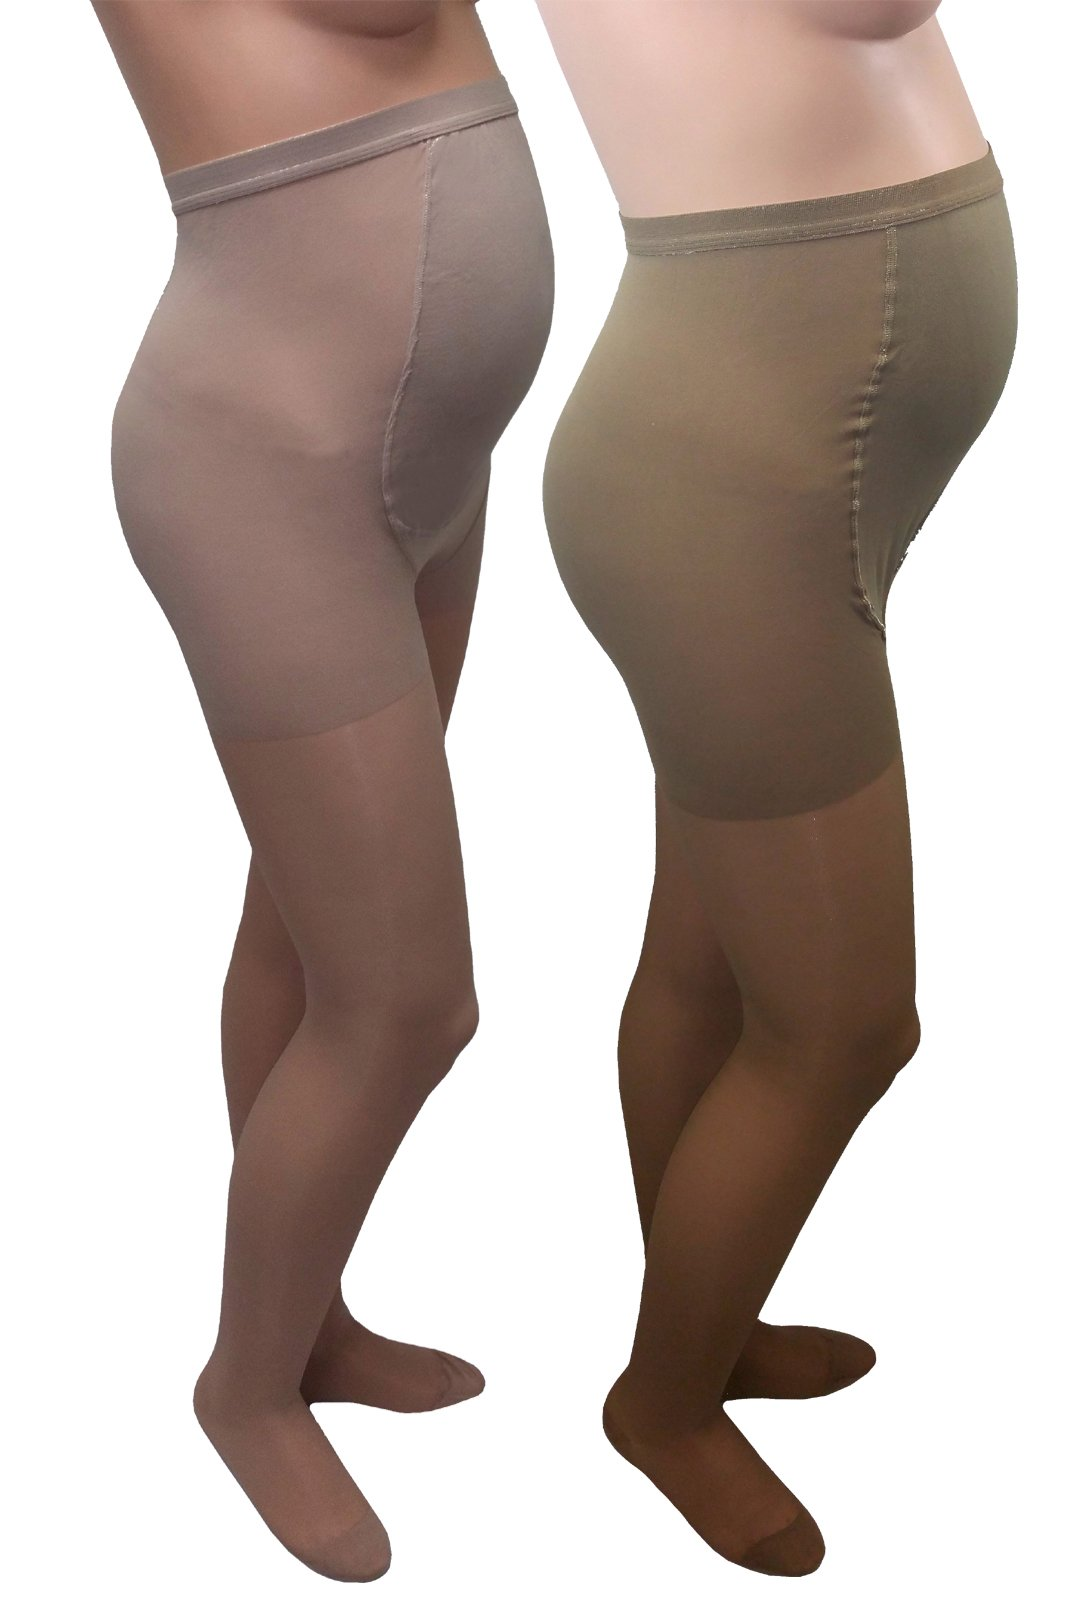 GABRIALLA Maternity Pantyhose - Compression (20-22 mmHg): H-260, 2 Count, Tall, Beige/Nude